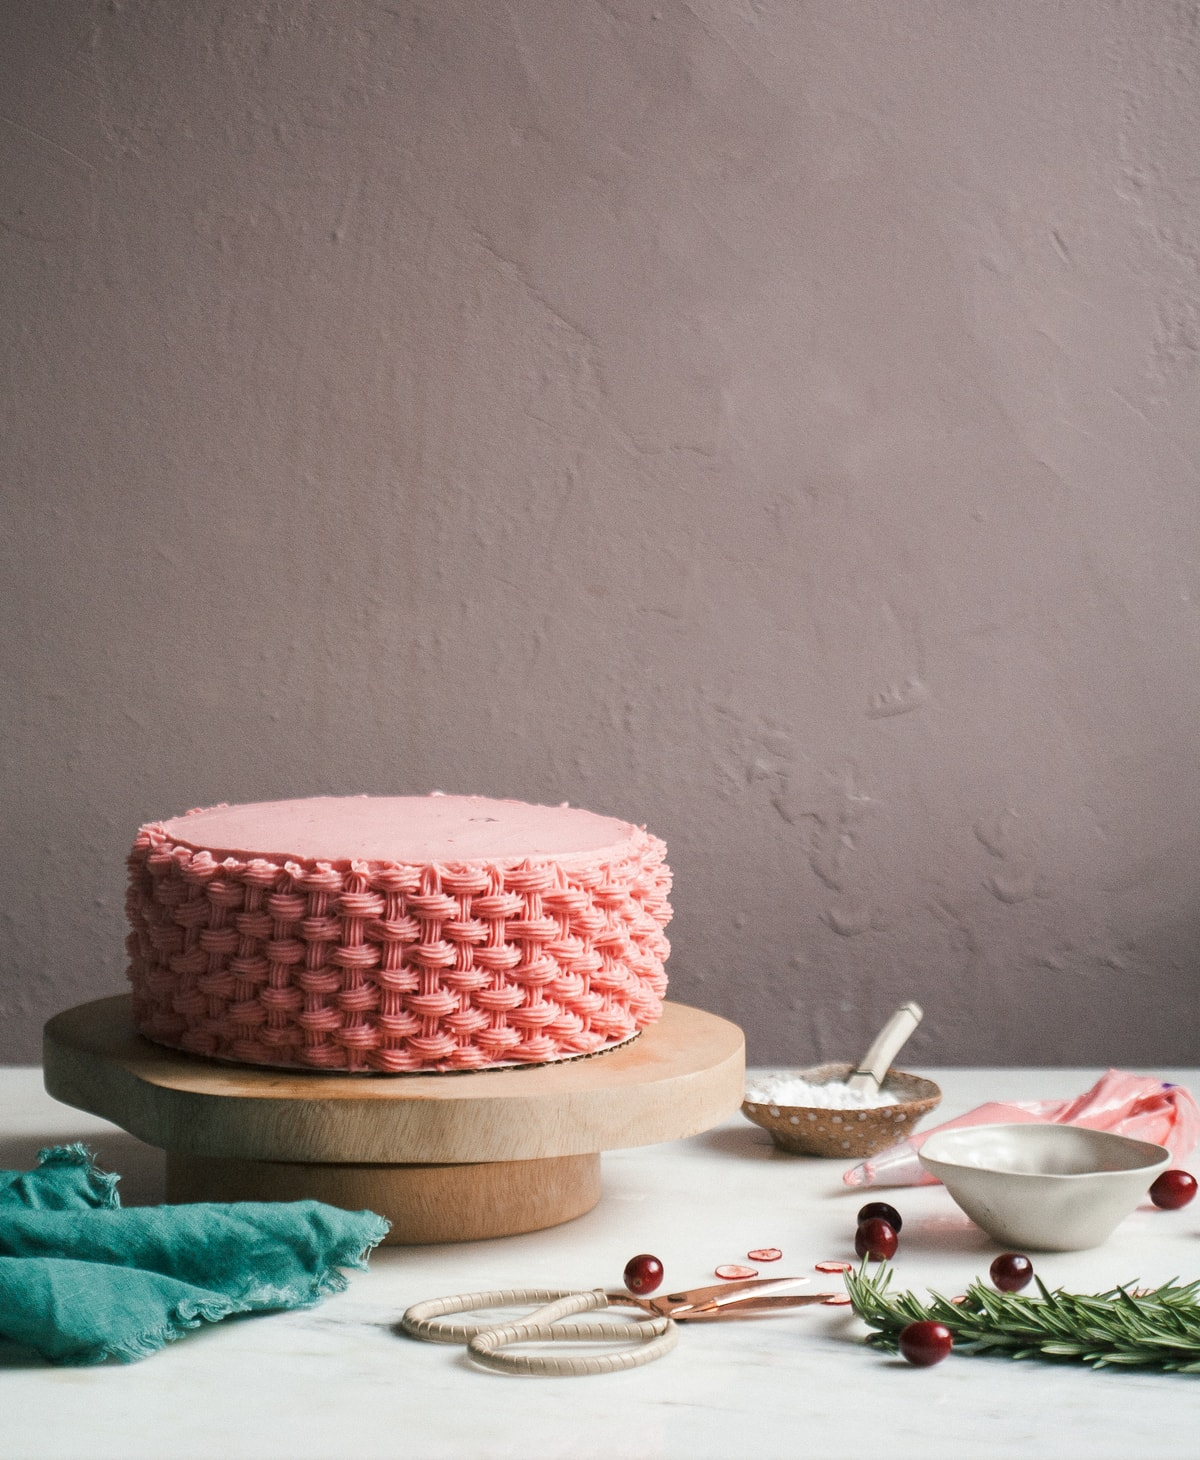 Cranberry Chestnut Cake